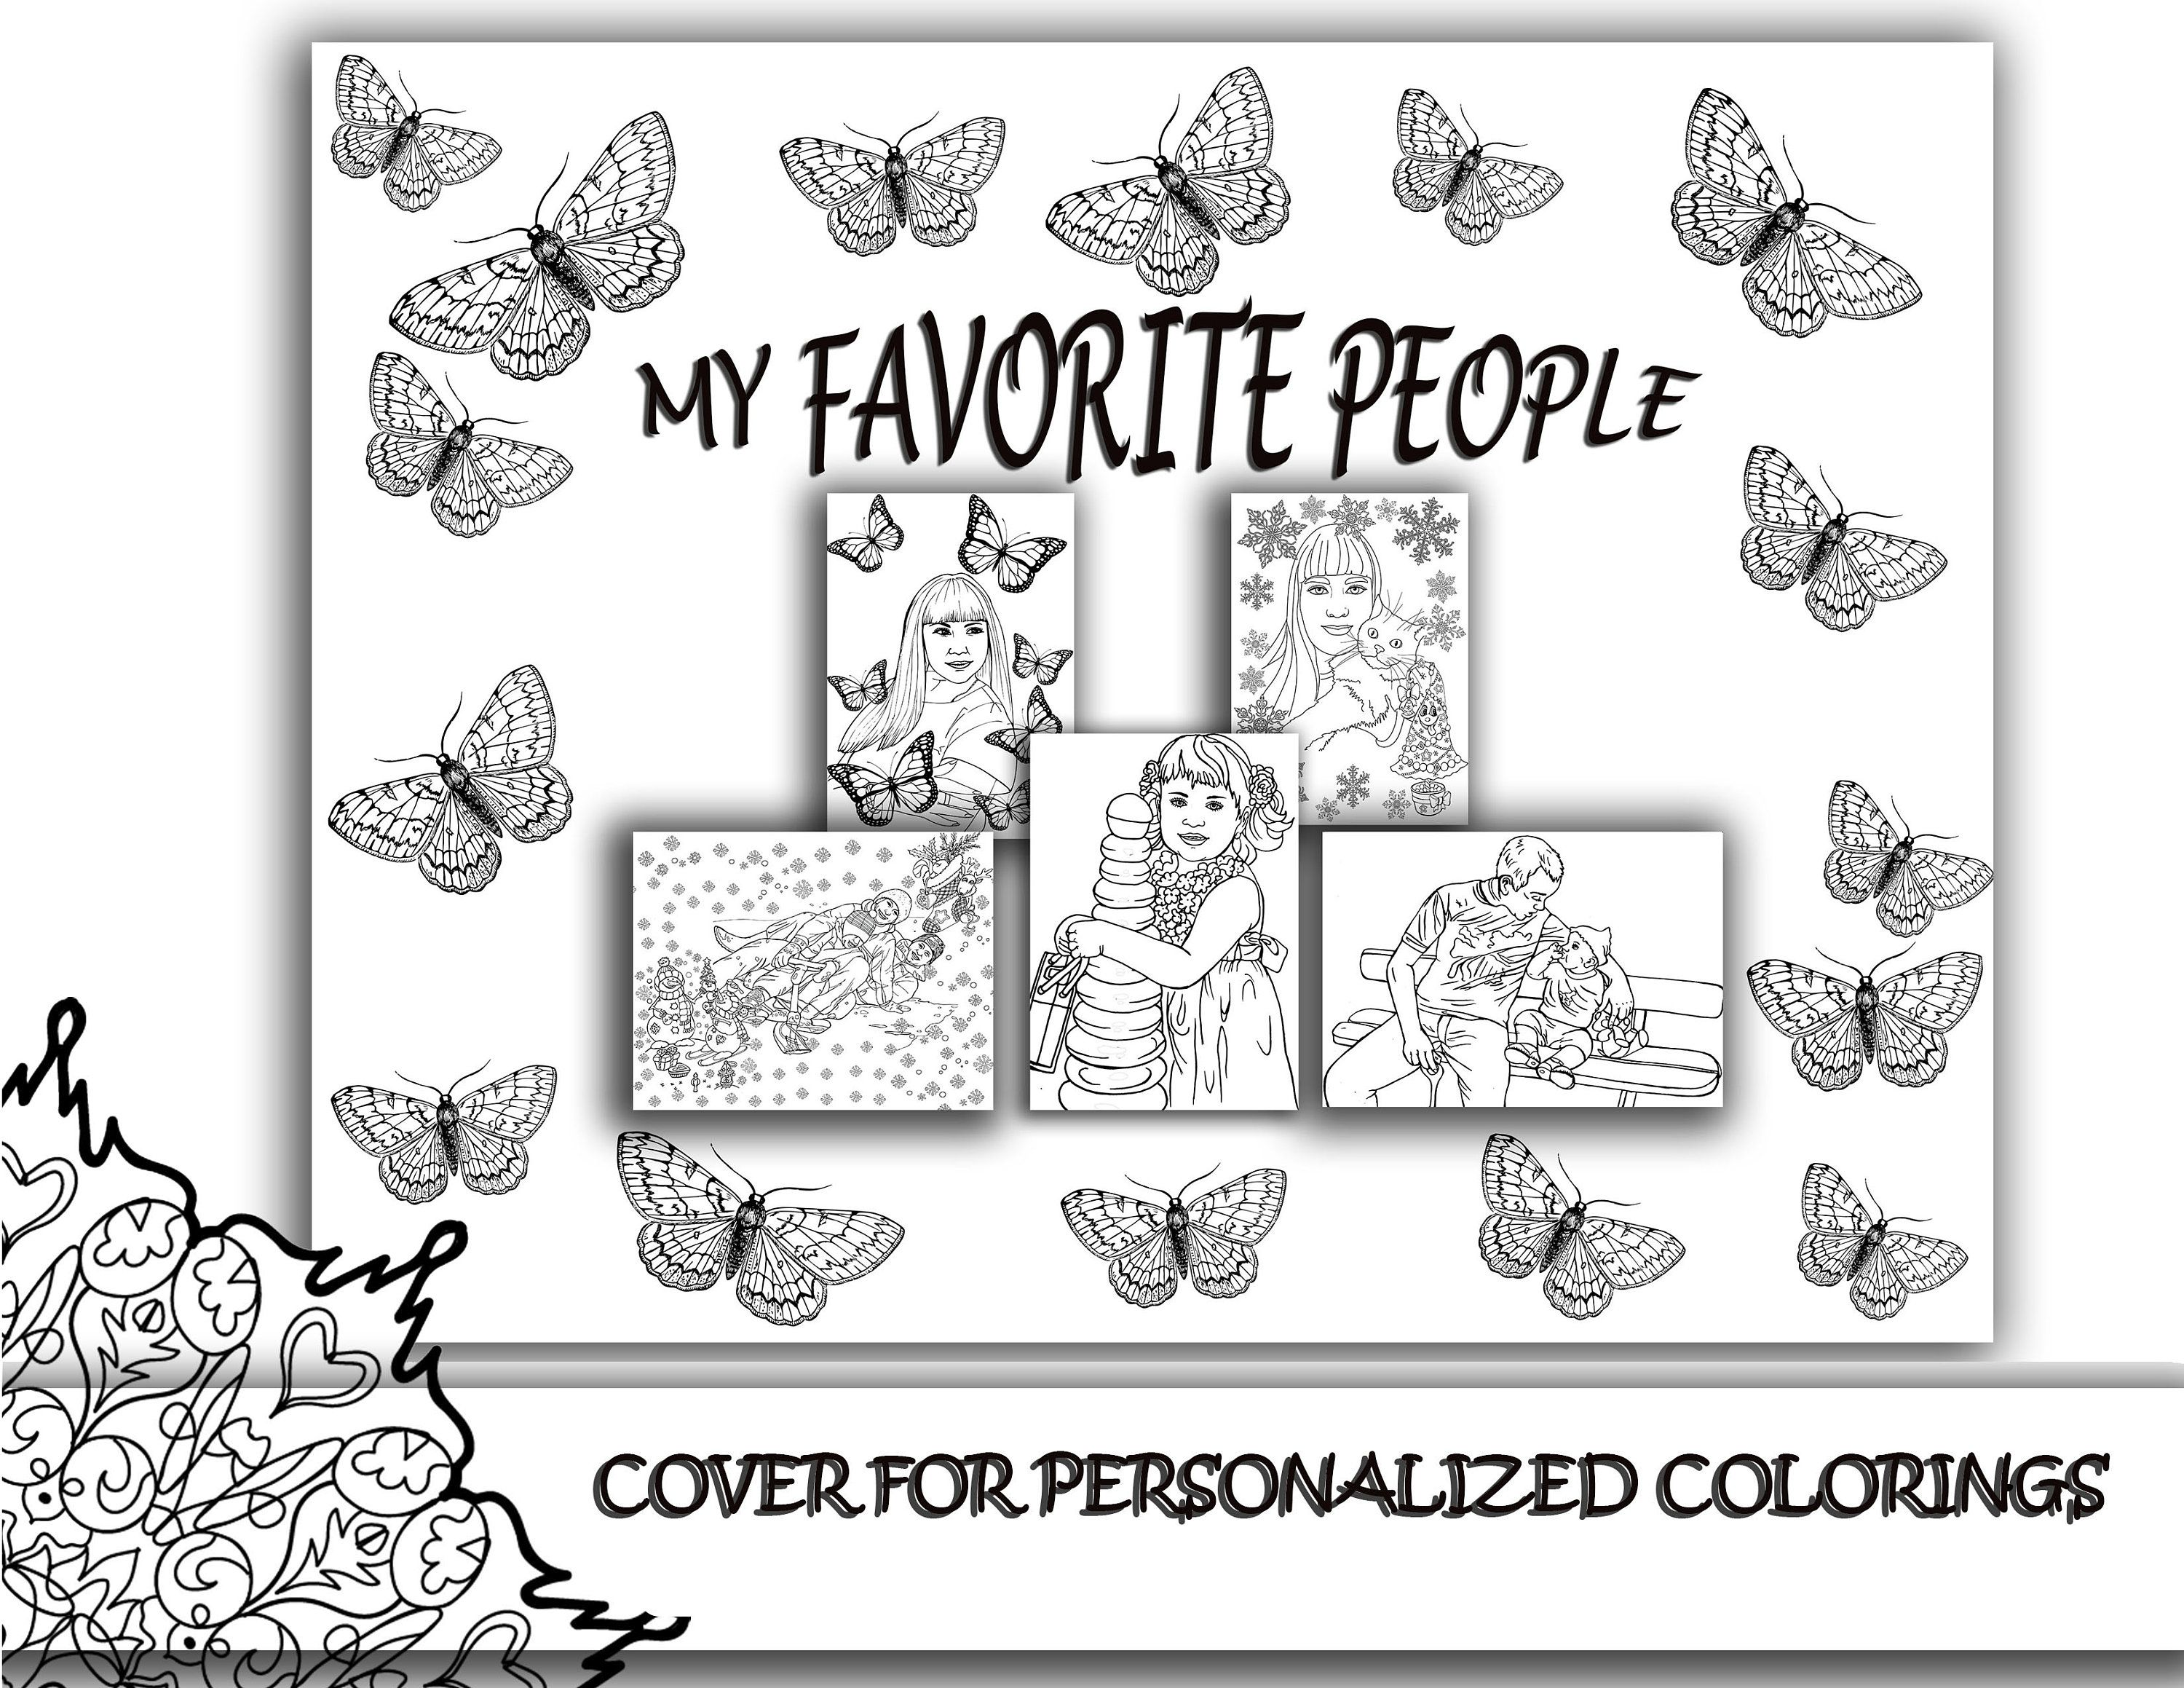 Cover Collage For Personalized Coloring Pages Cover Custom Etsy In 2021 Coloring Pages Personalized Coloring Book Book Drawing